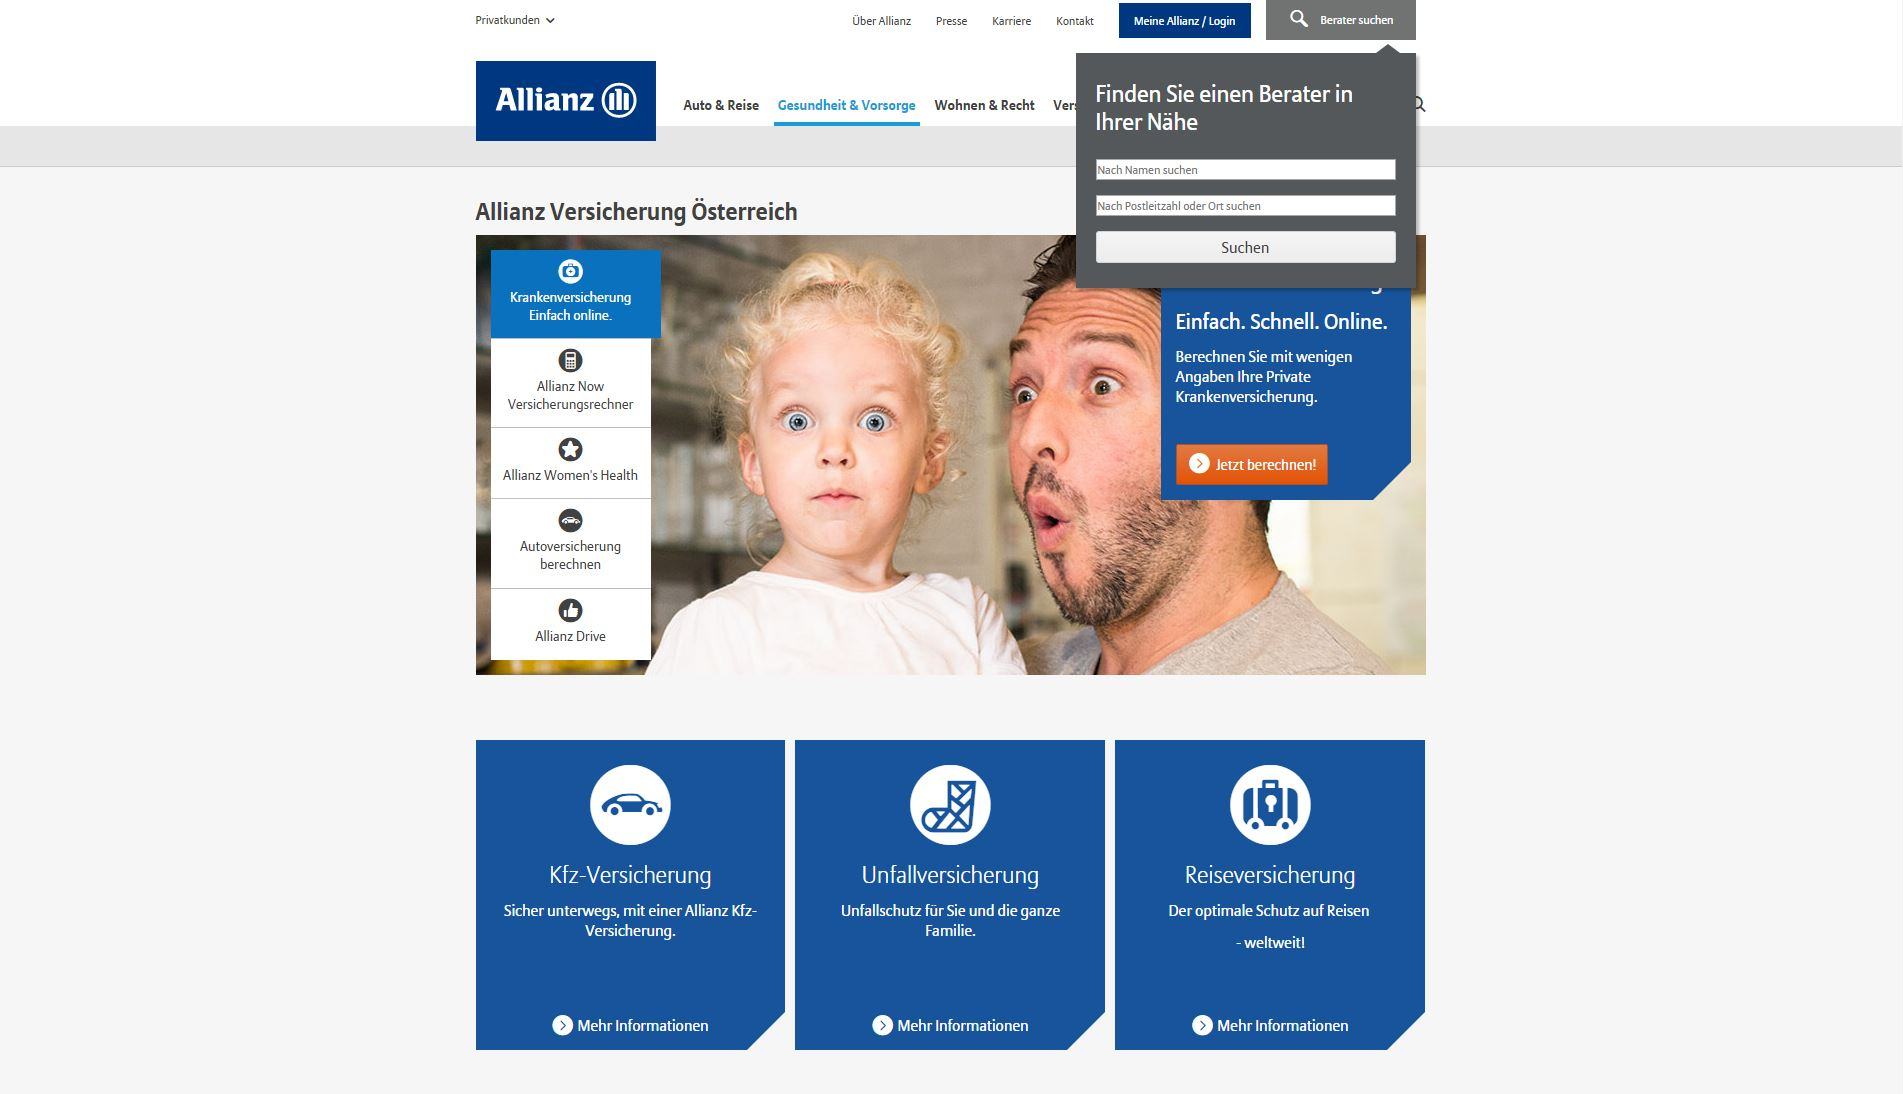 Screenshot der Website der Allianz Versicherung